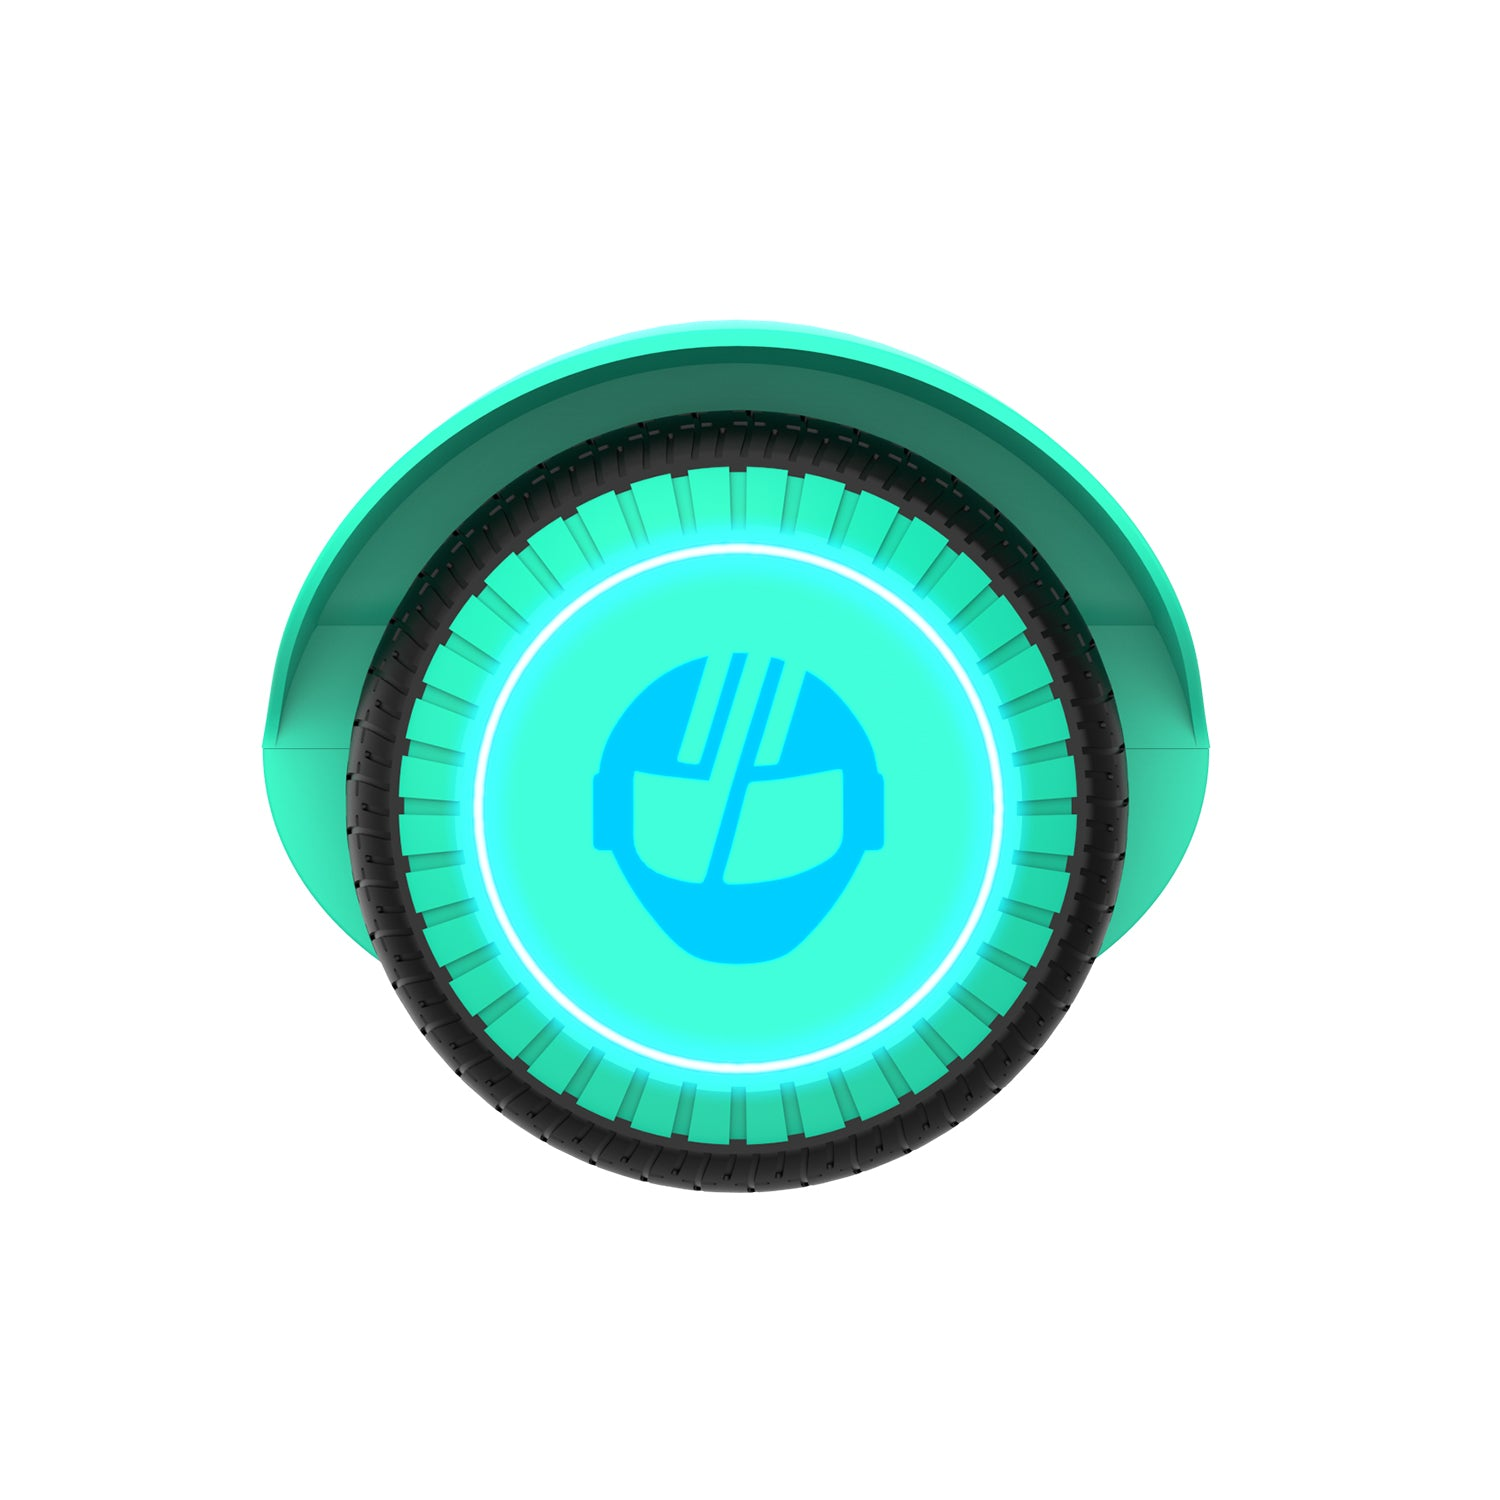 Teal Edge Hoverboard Wheel Image